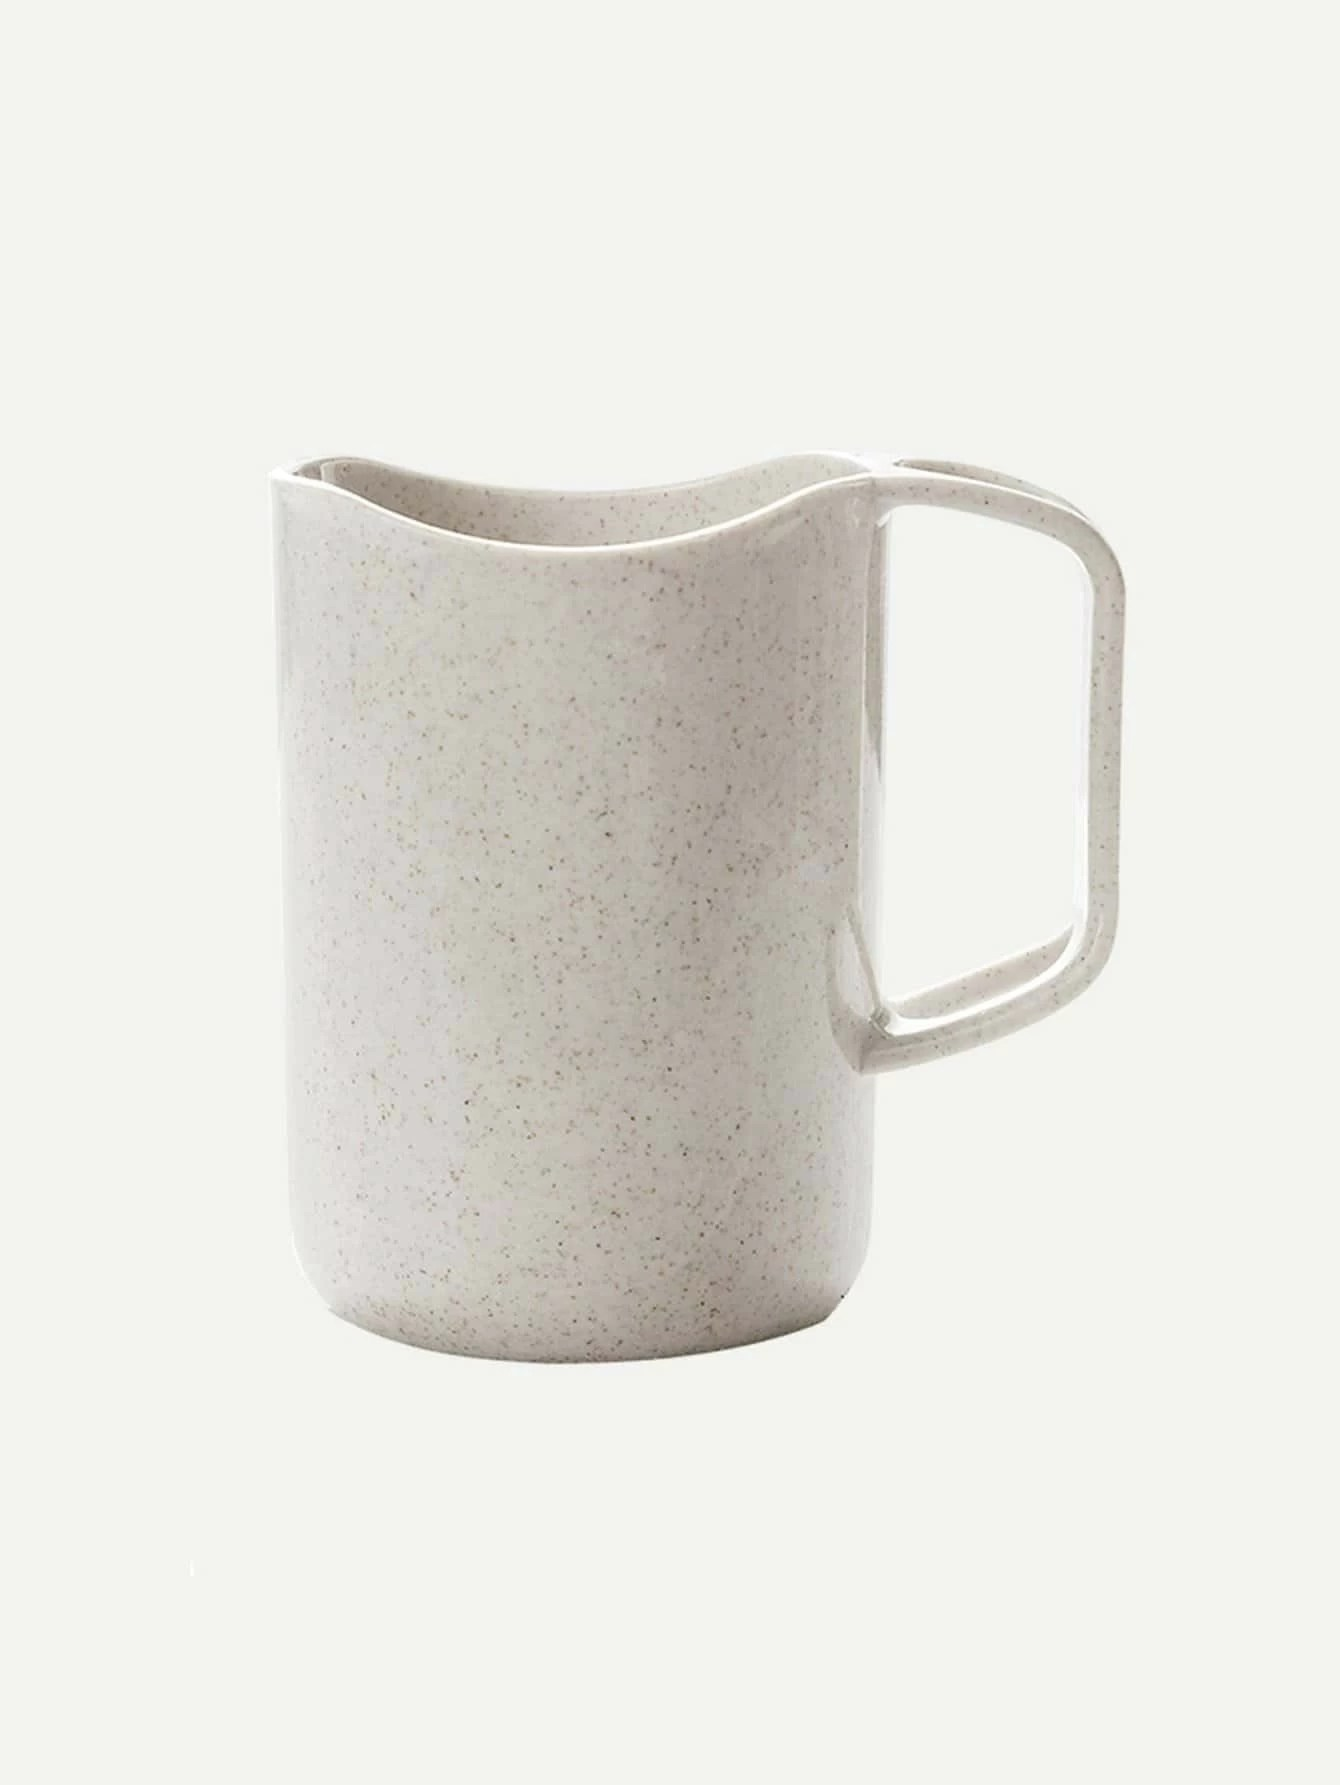 Bathroom Accessories Online Australia Gargle Cup With Handle